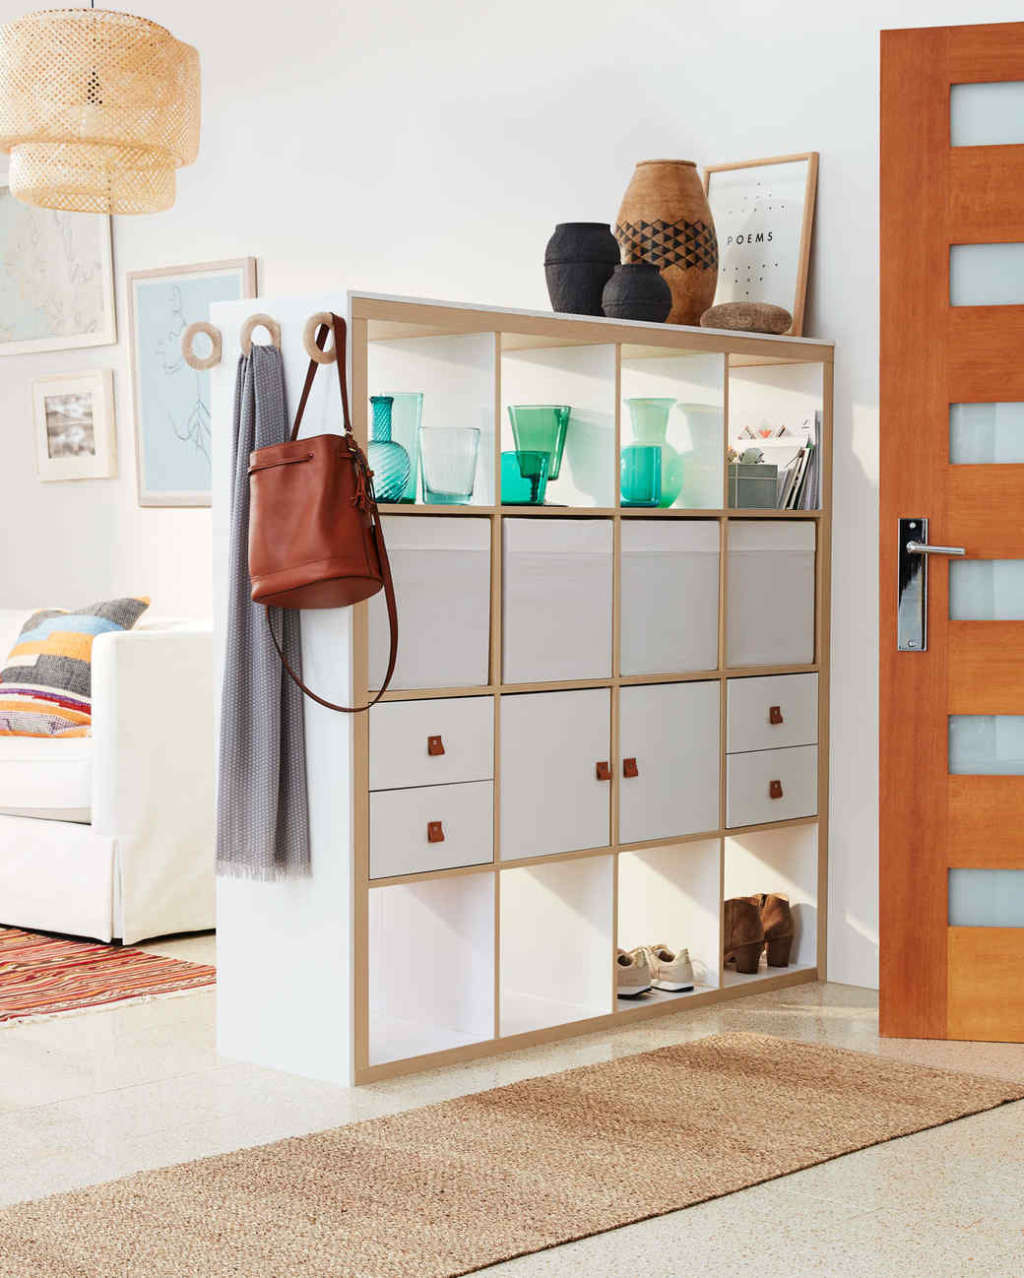 How to Use Furniture to Add Storage to Open-Plan Space